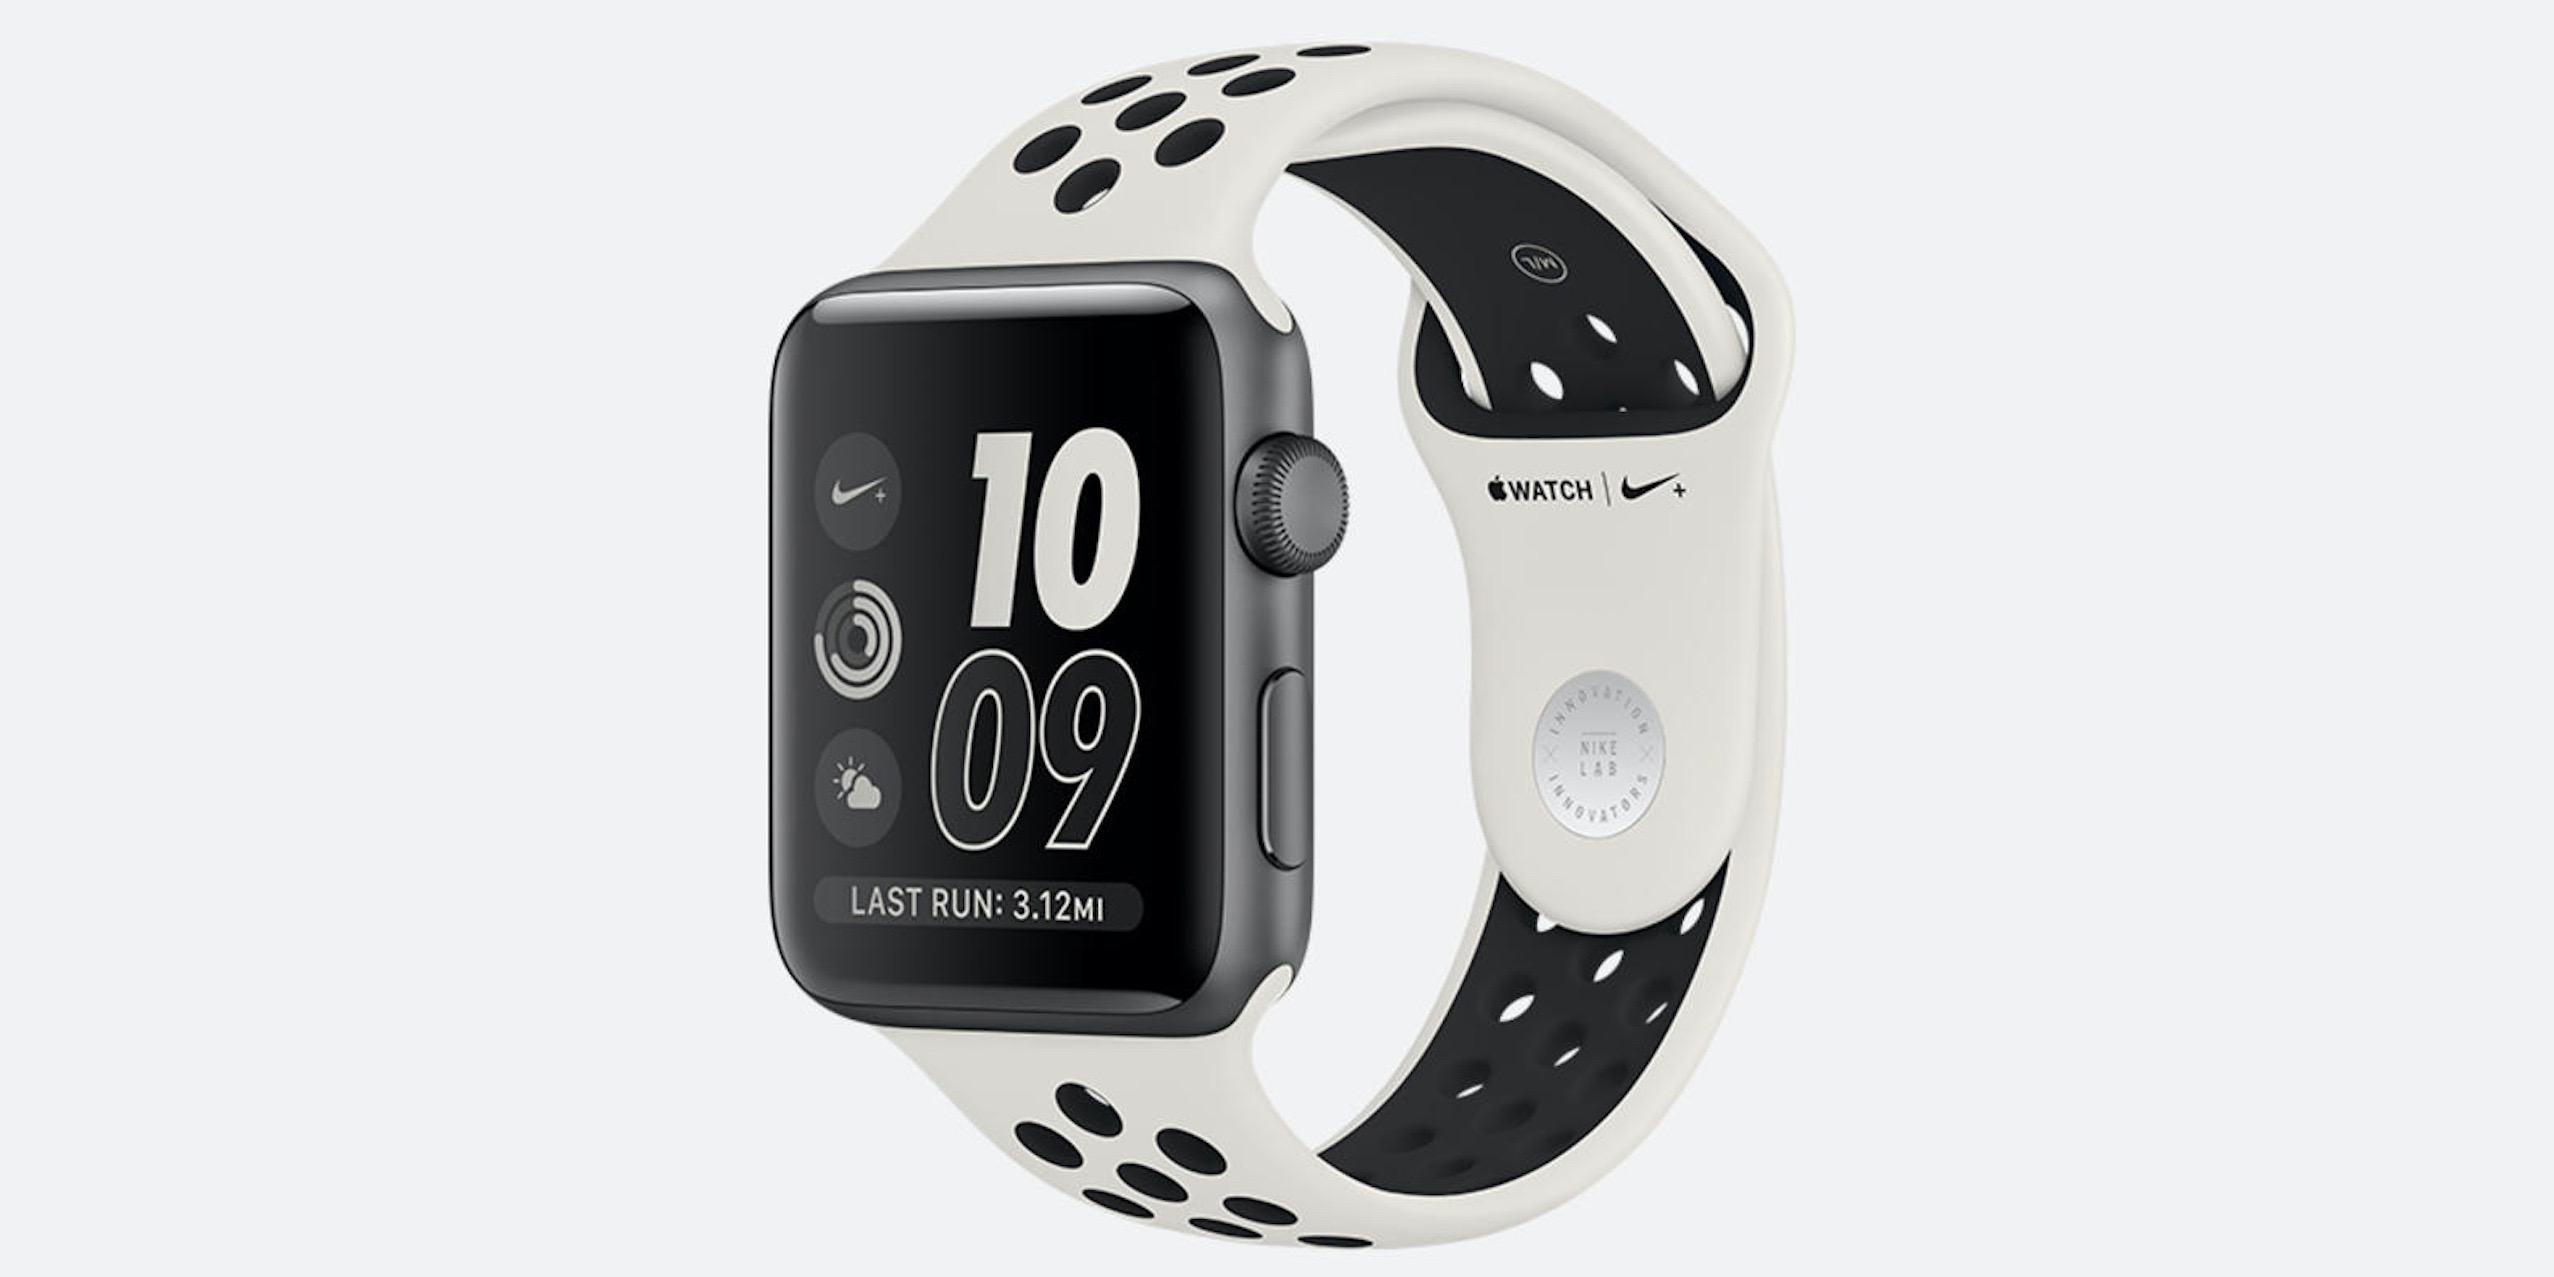 KGI: Apple Watch 3 to come in LTE and non-LTE models, no obvious form factor change